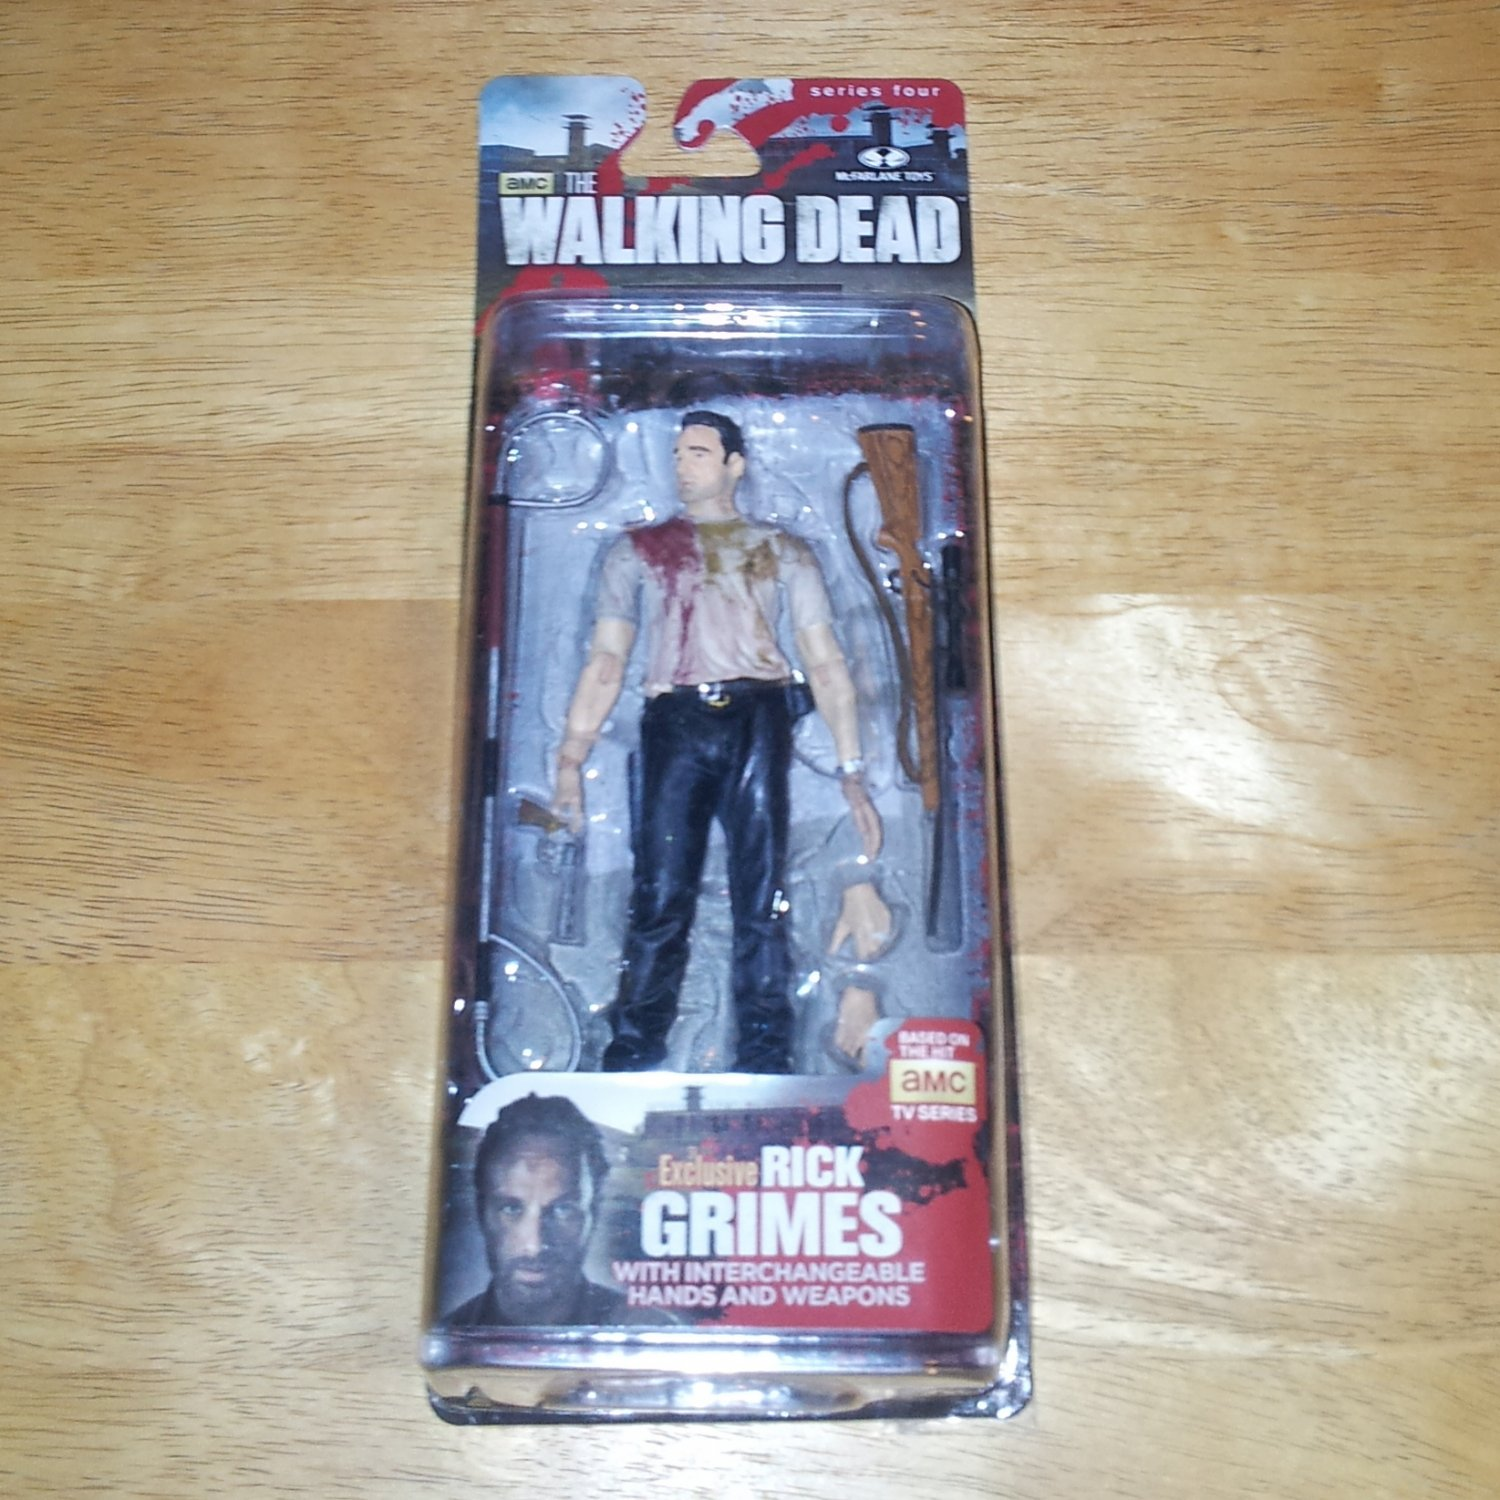 Rick Grimes The Walking Dead Series 4 Exclusive